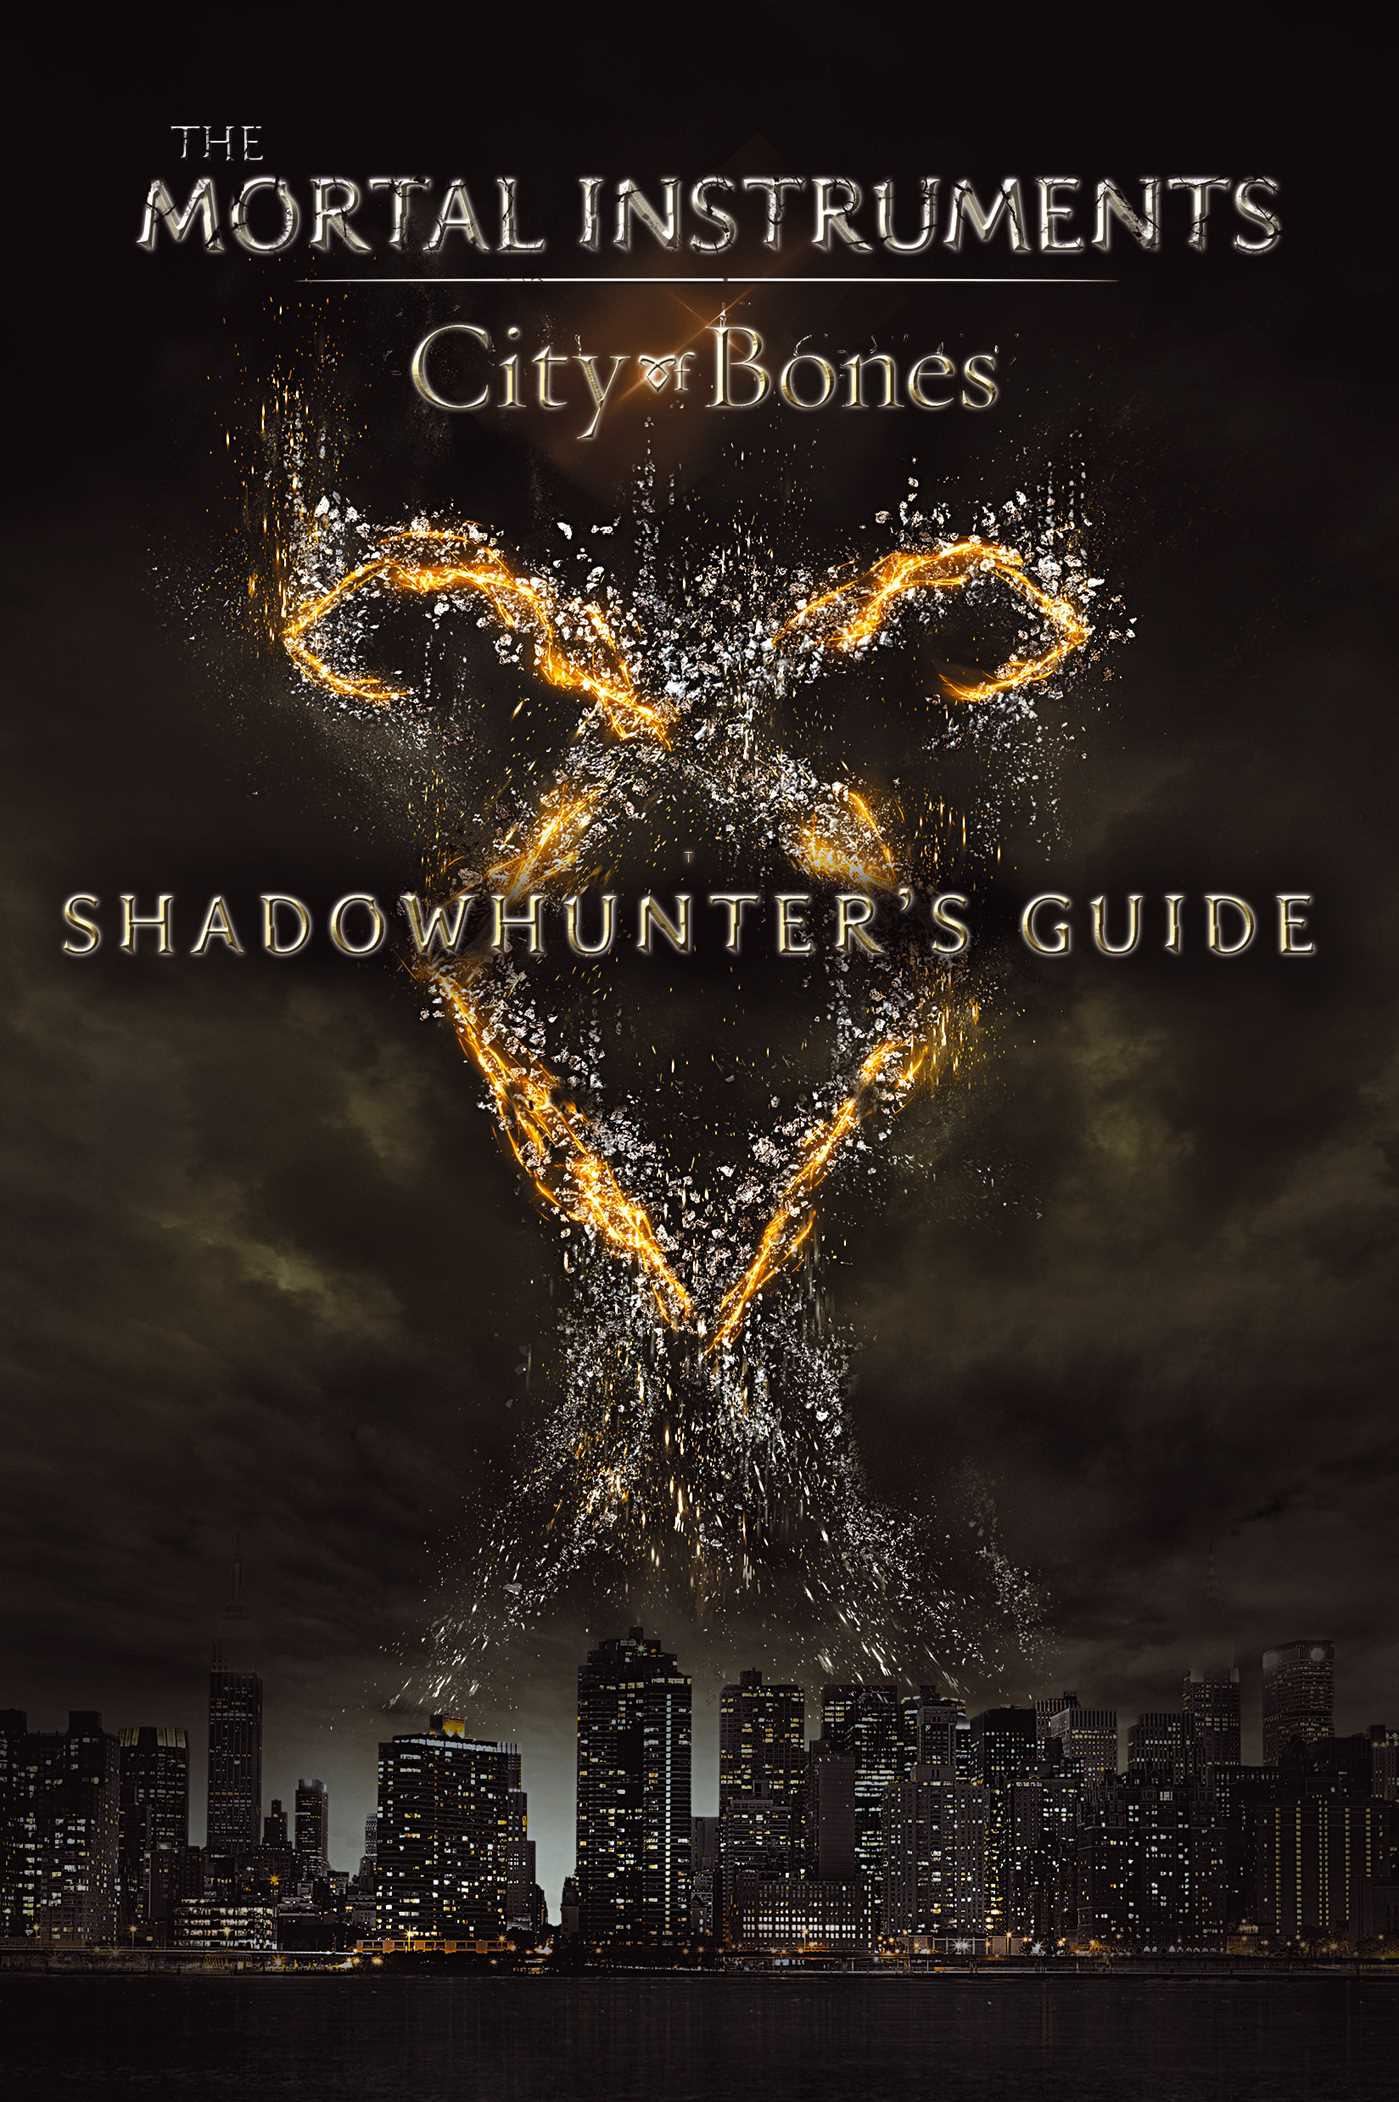 Shadowhunters guide 9781442495883 hr